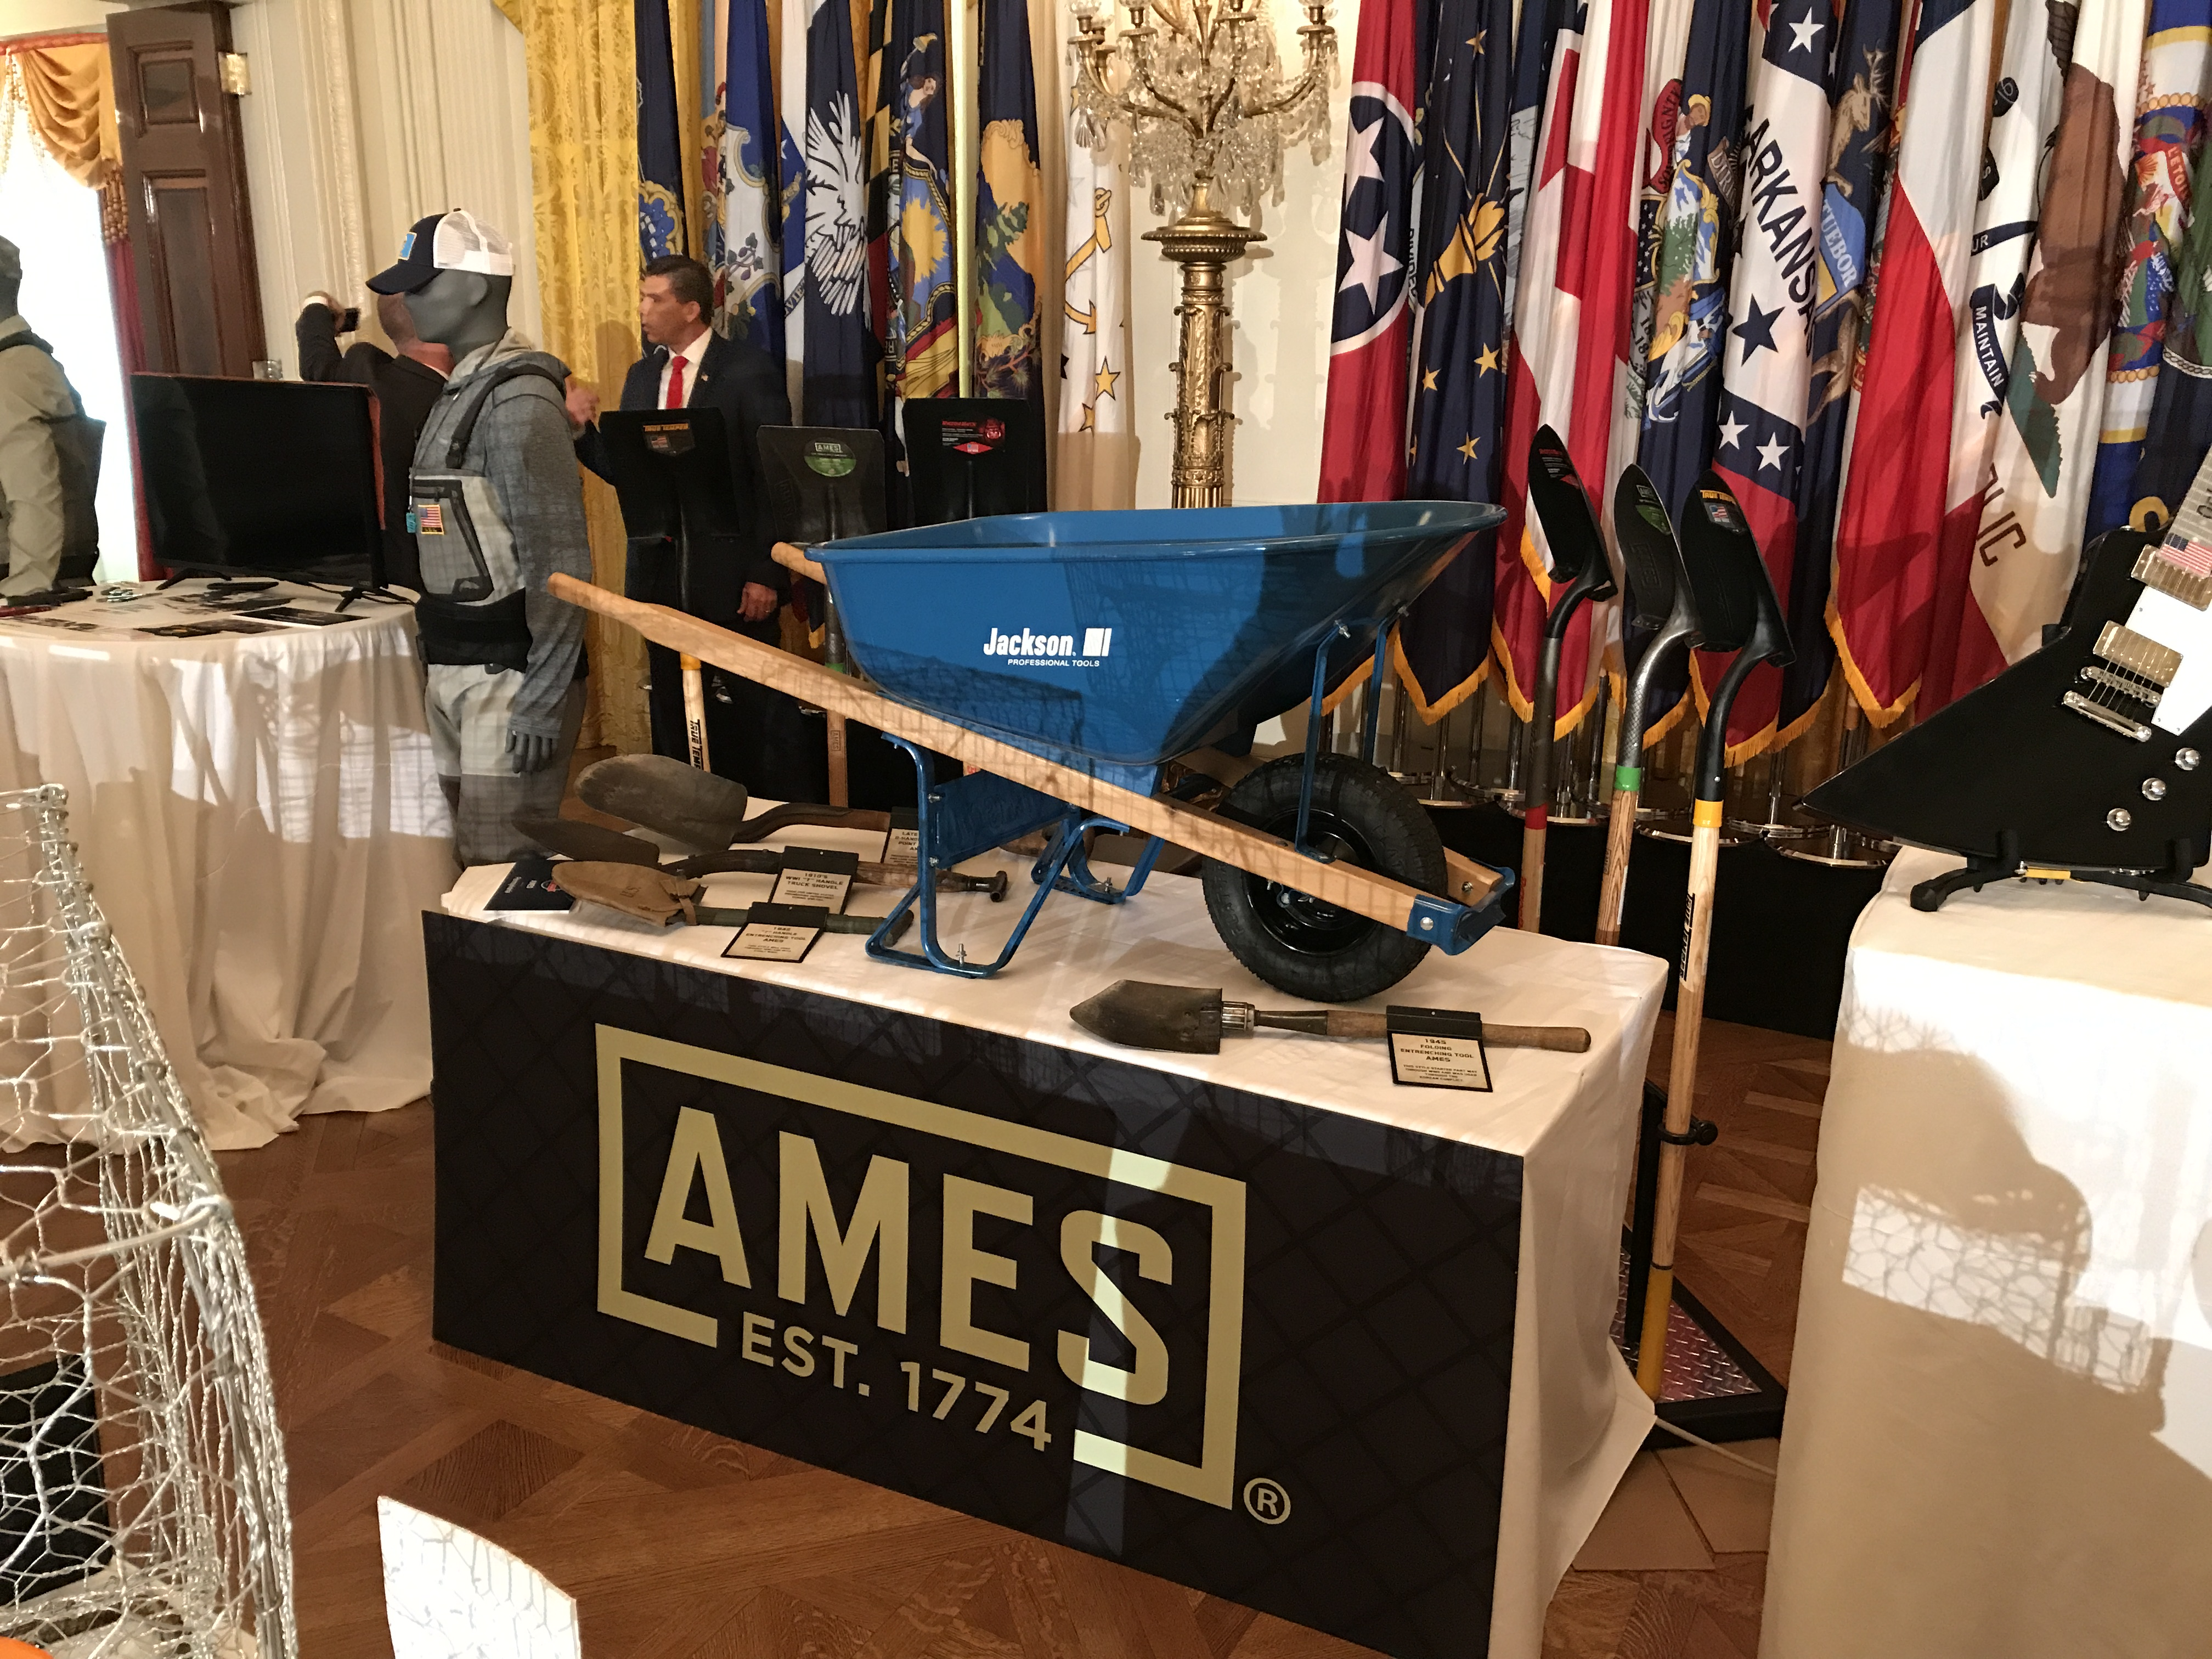 How Do I Get A Product Made Ames Represents Pennsylvania At The White House Made In America